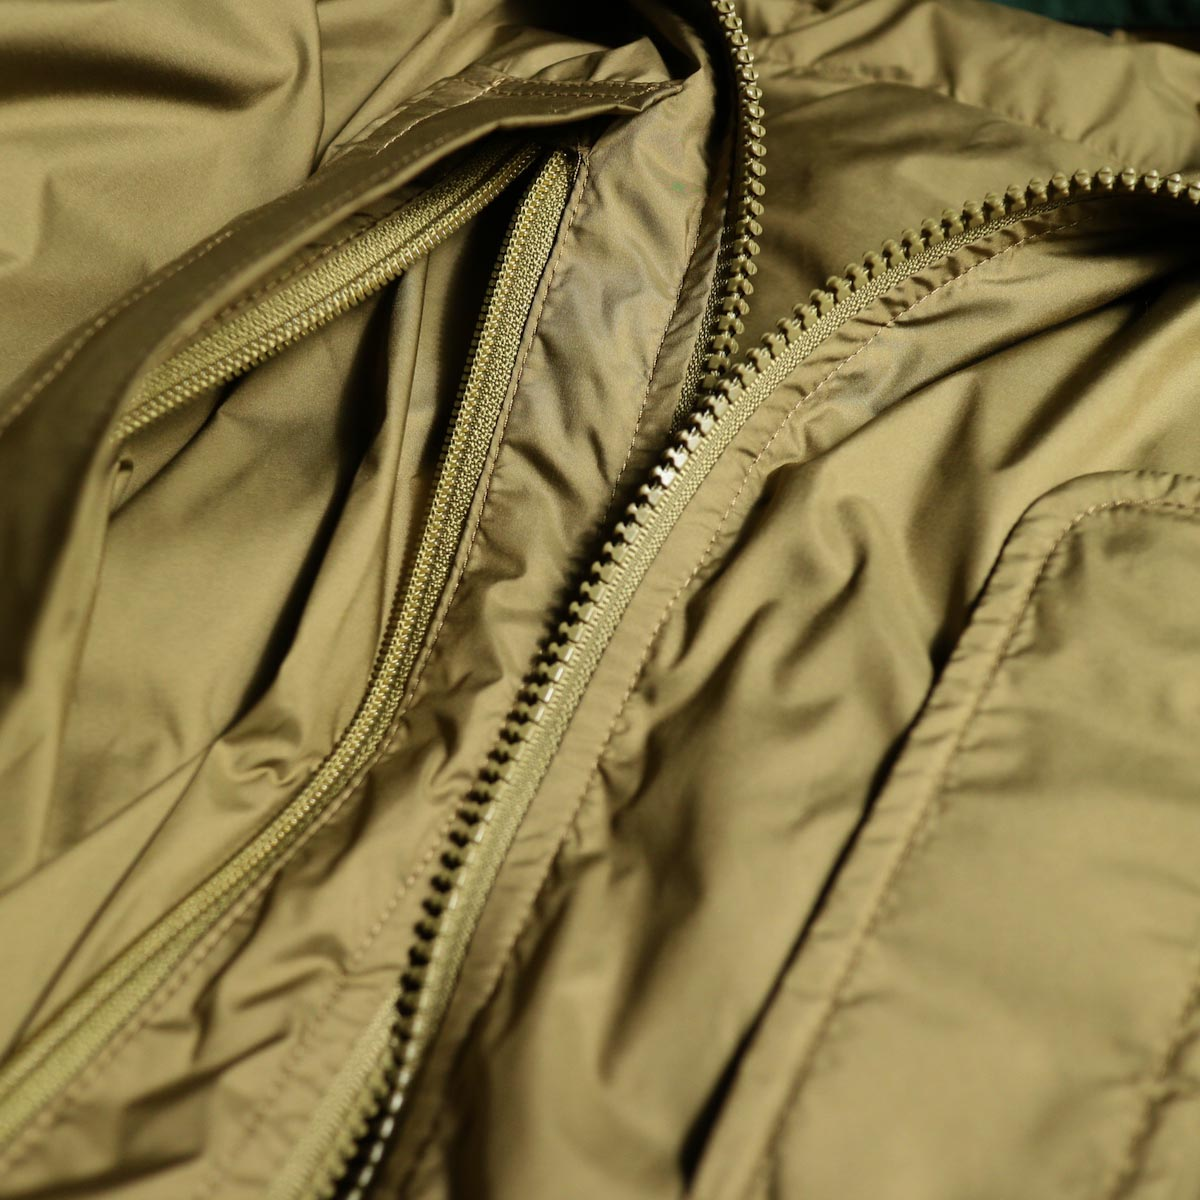 J&S Franklin / BRITISH ARMY PCS LIGHT WEIGHT DOWN JACKET (Coyote) ポケット